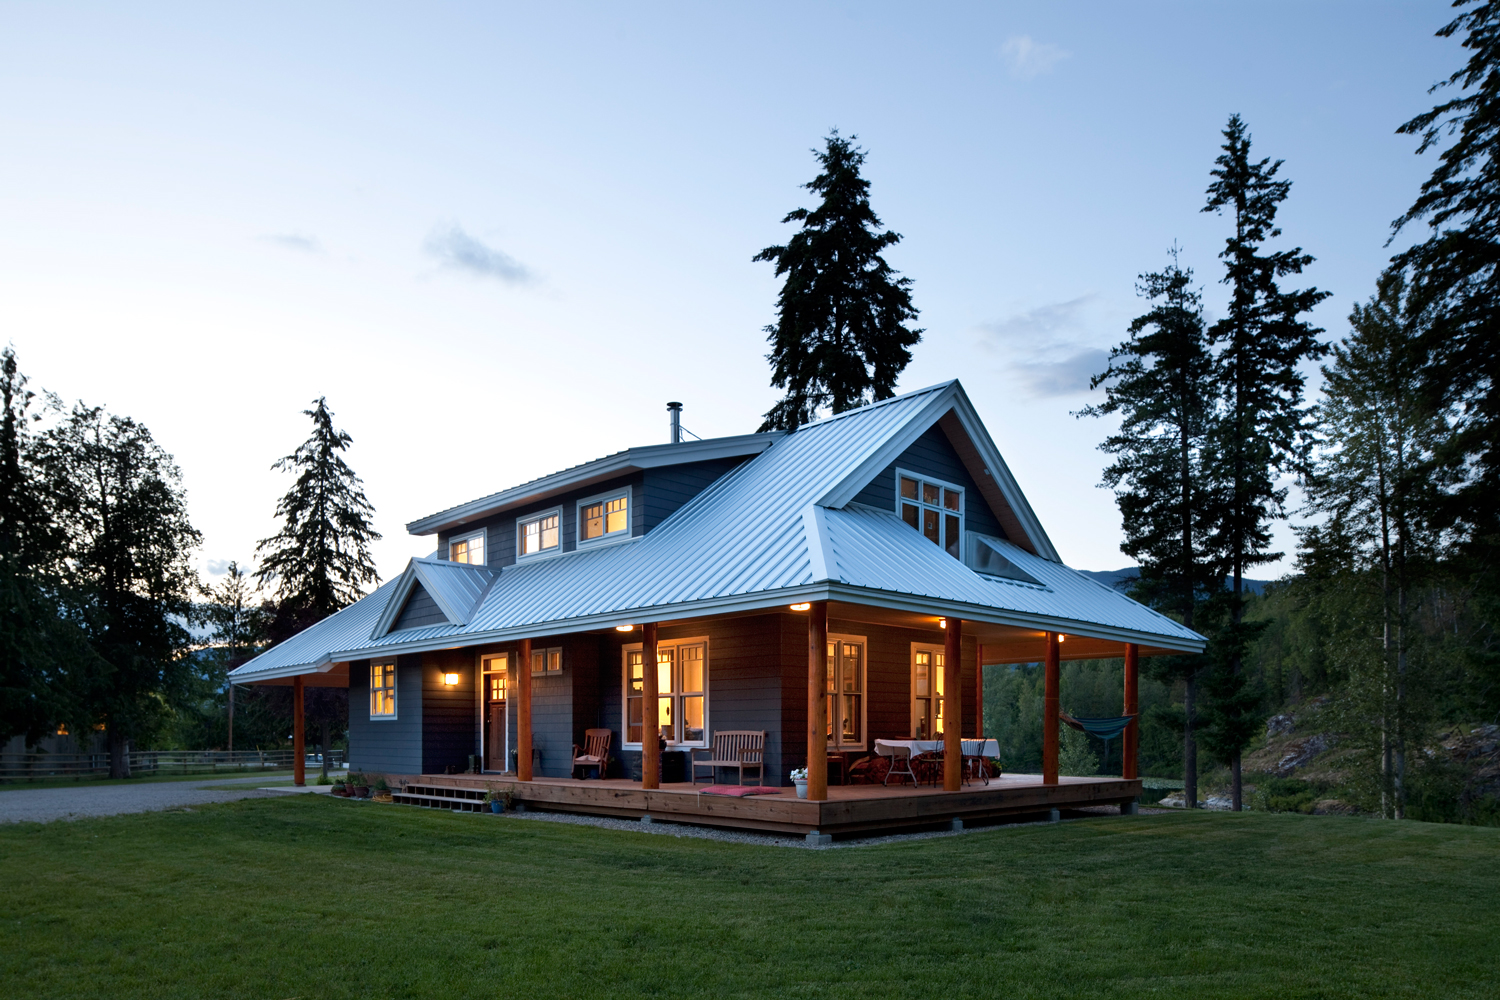 Mountain home revelstoke bc john gower design for Home designs bc